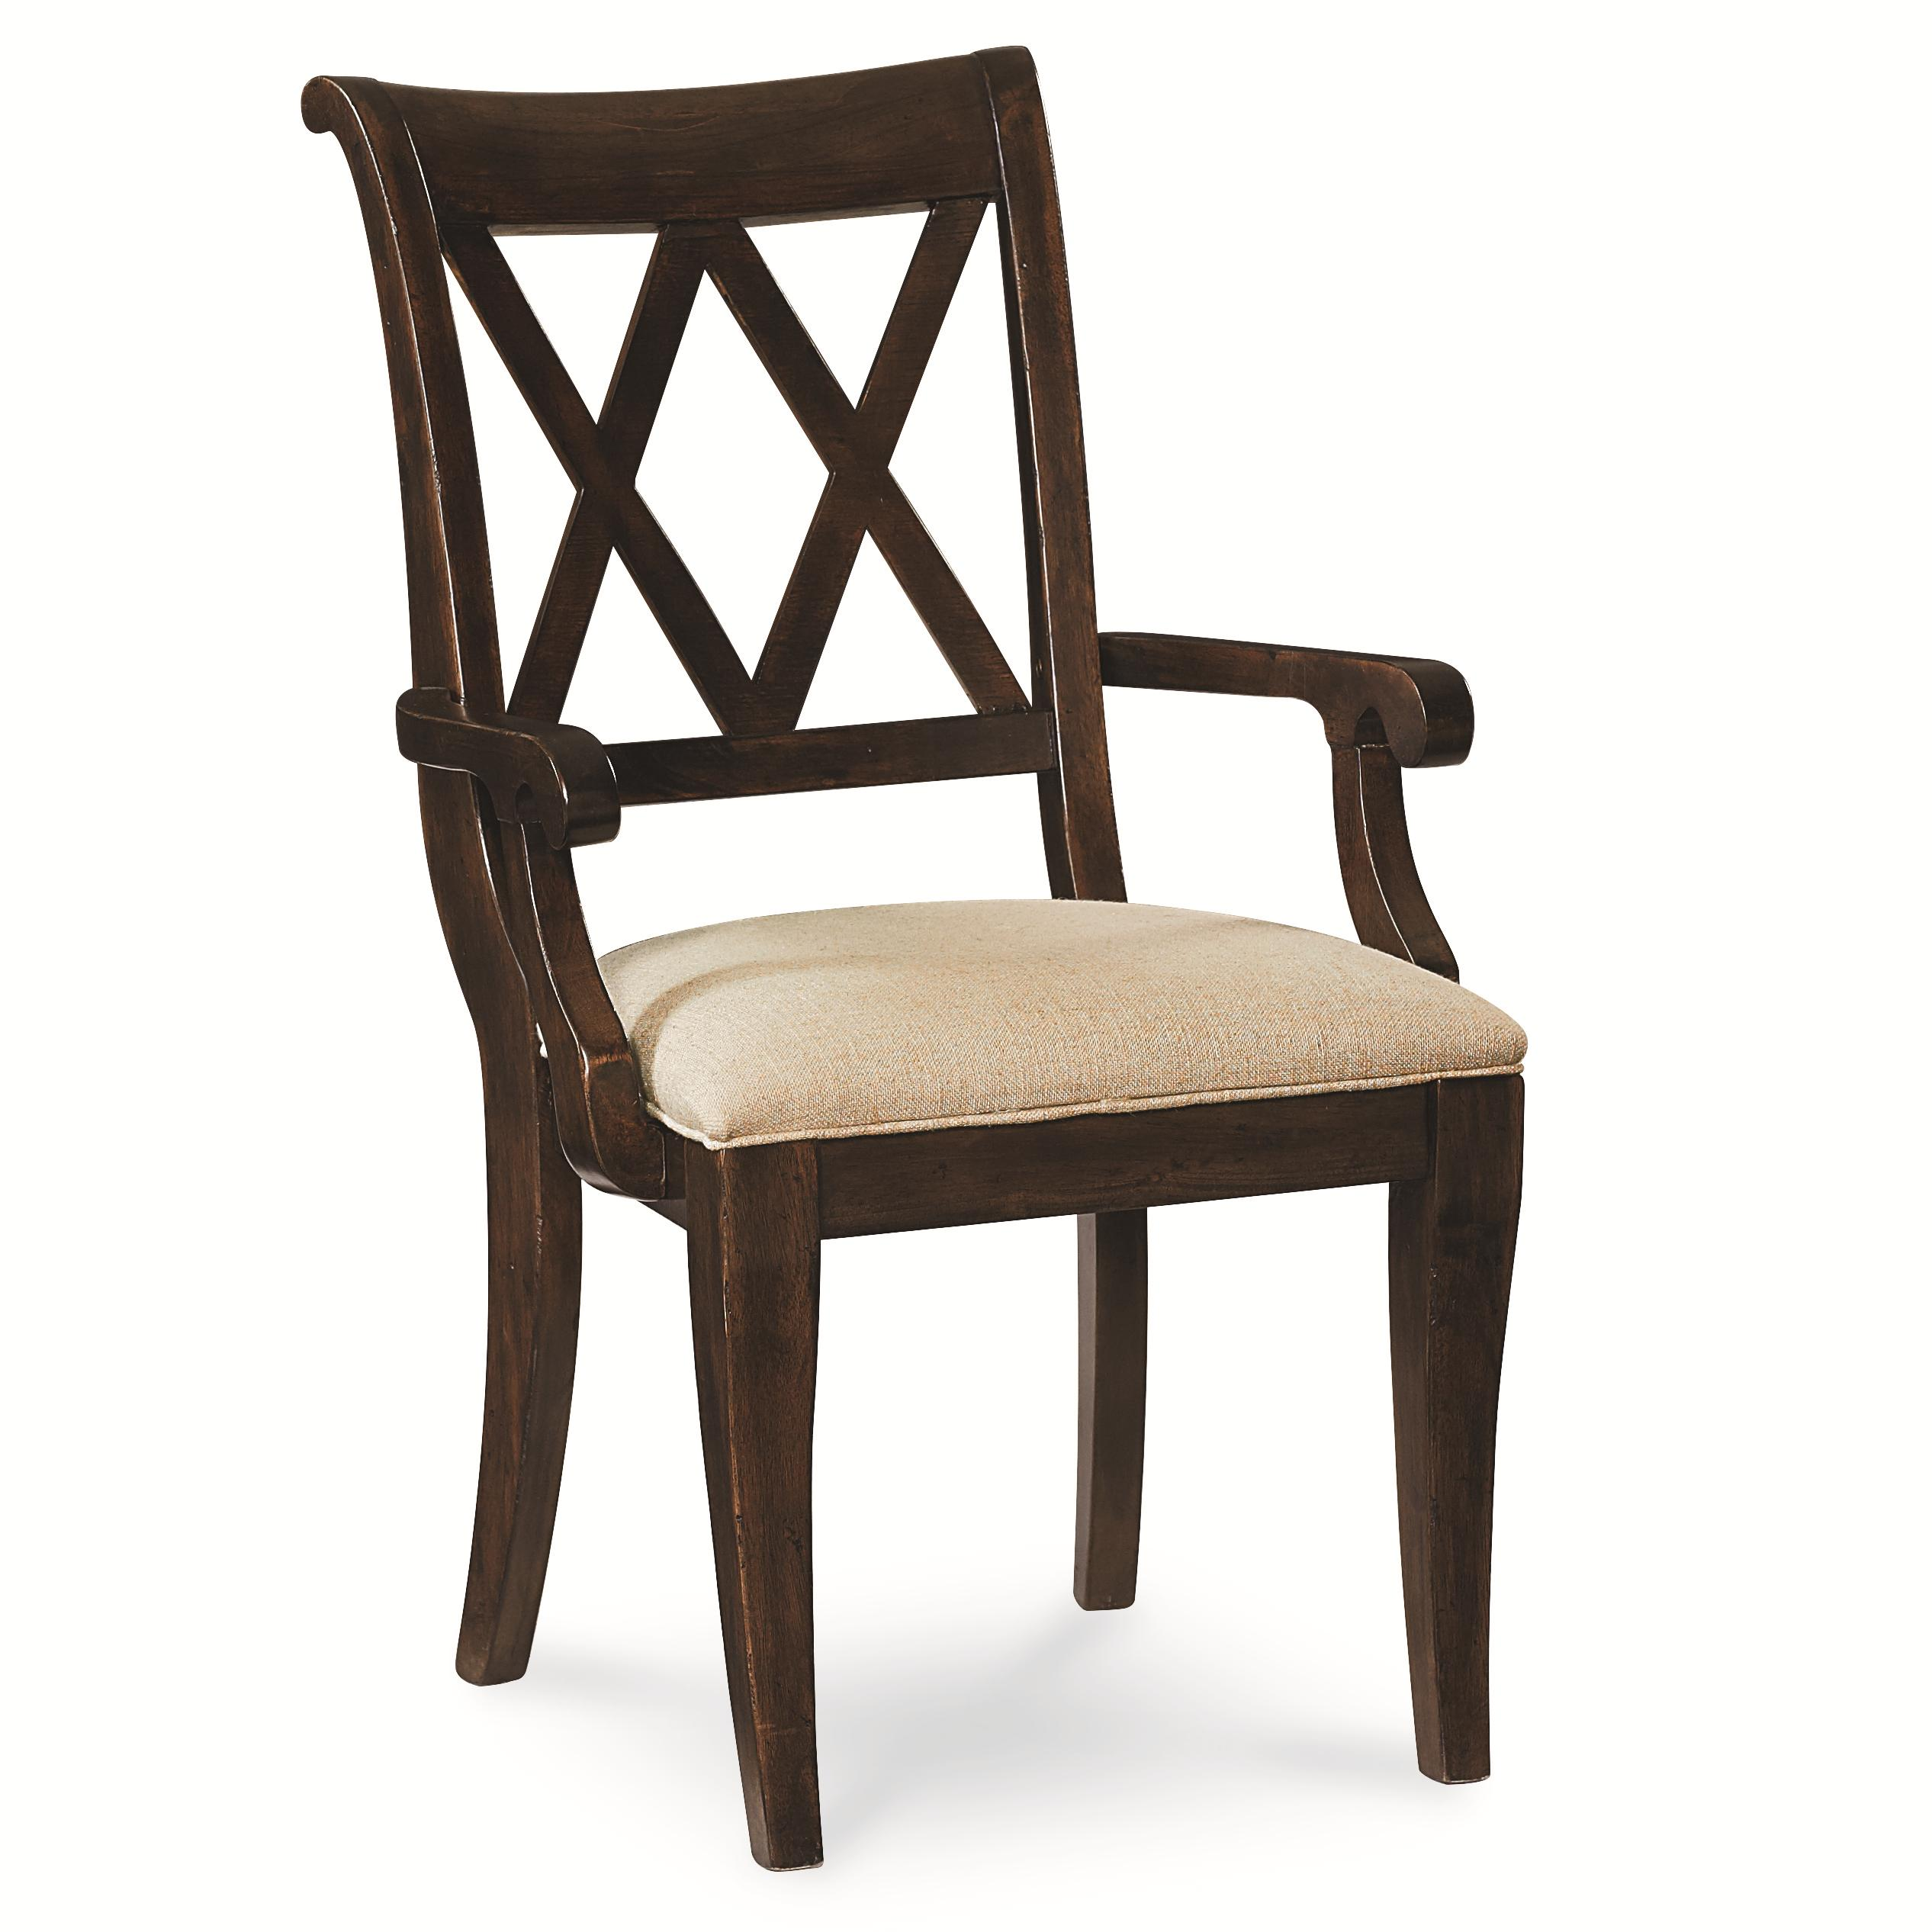 Legacy Classic Thatcher X Back Arm Chair - Item Number: 3700-141 KD